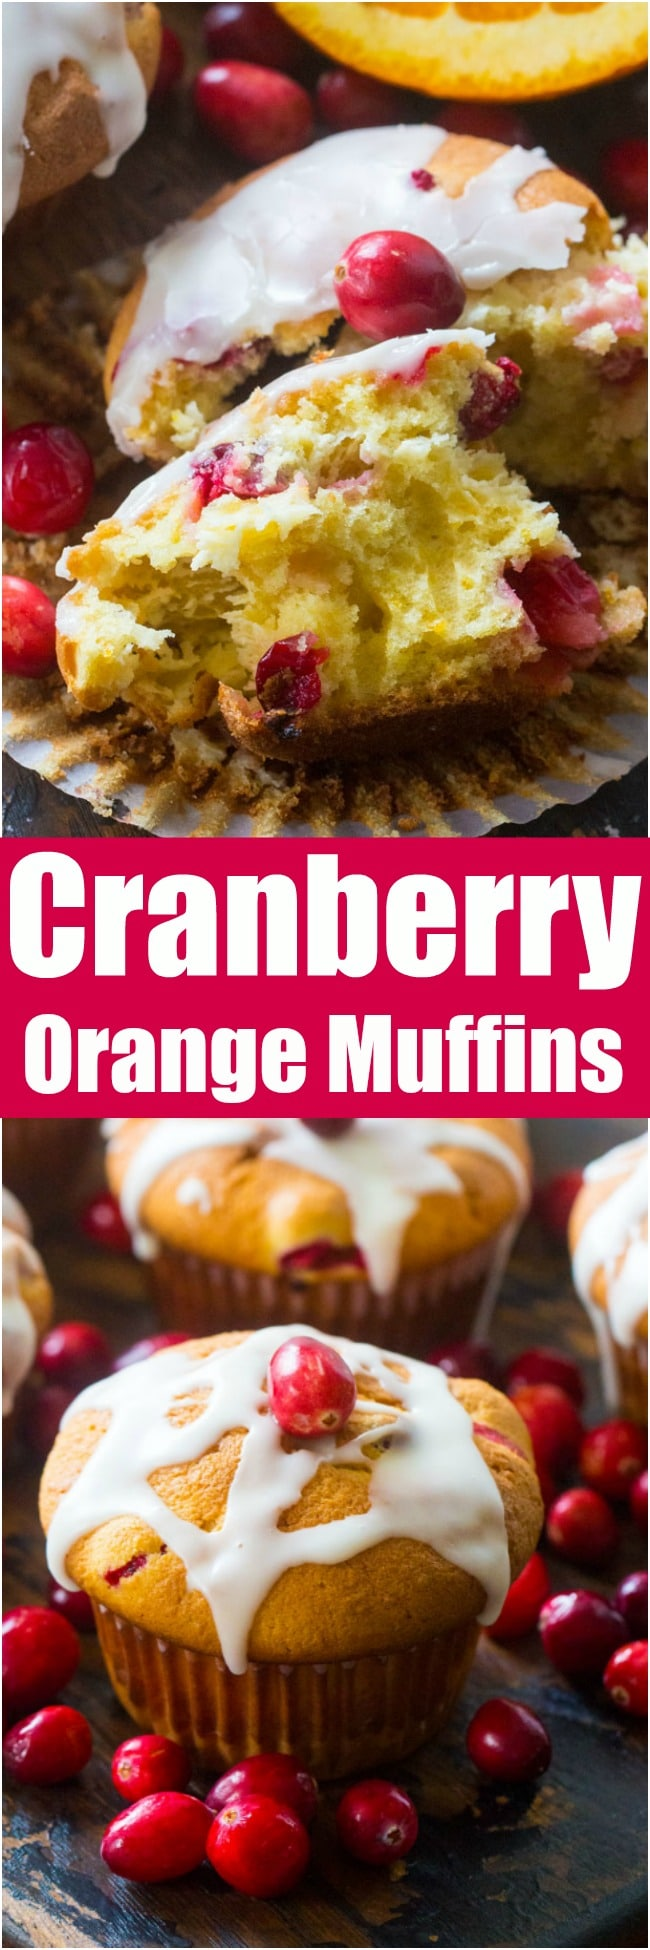 Cranberry Orange Muffins are the perfect fall flavor combo. Sweet, fluffy, with an amazing orange aroma and juicy, tart cranberries in every bite.